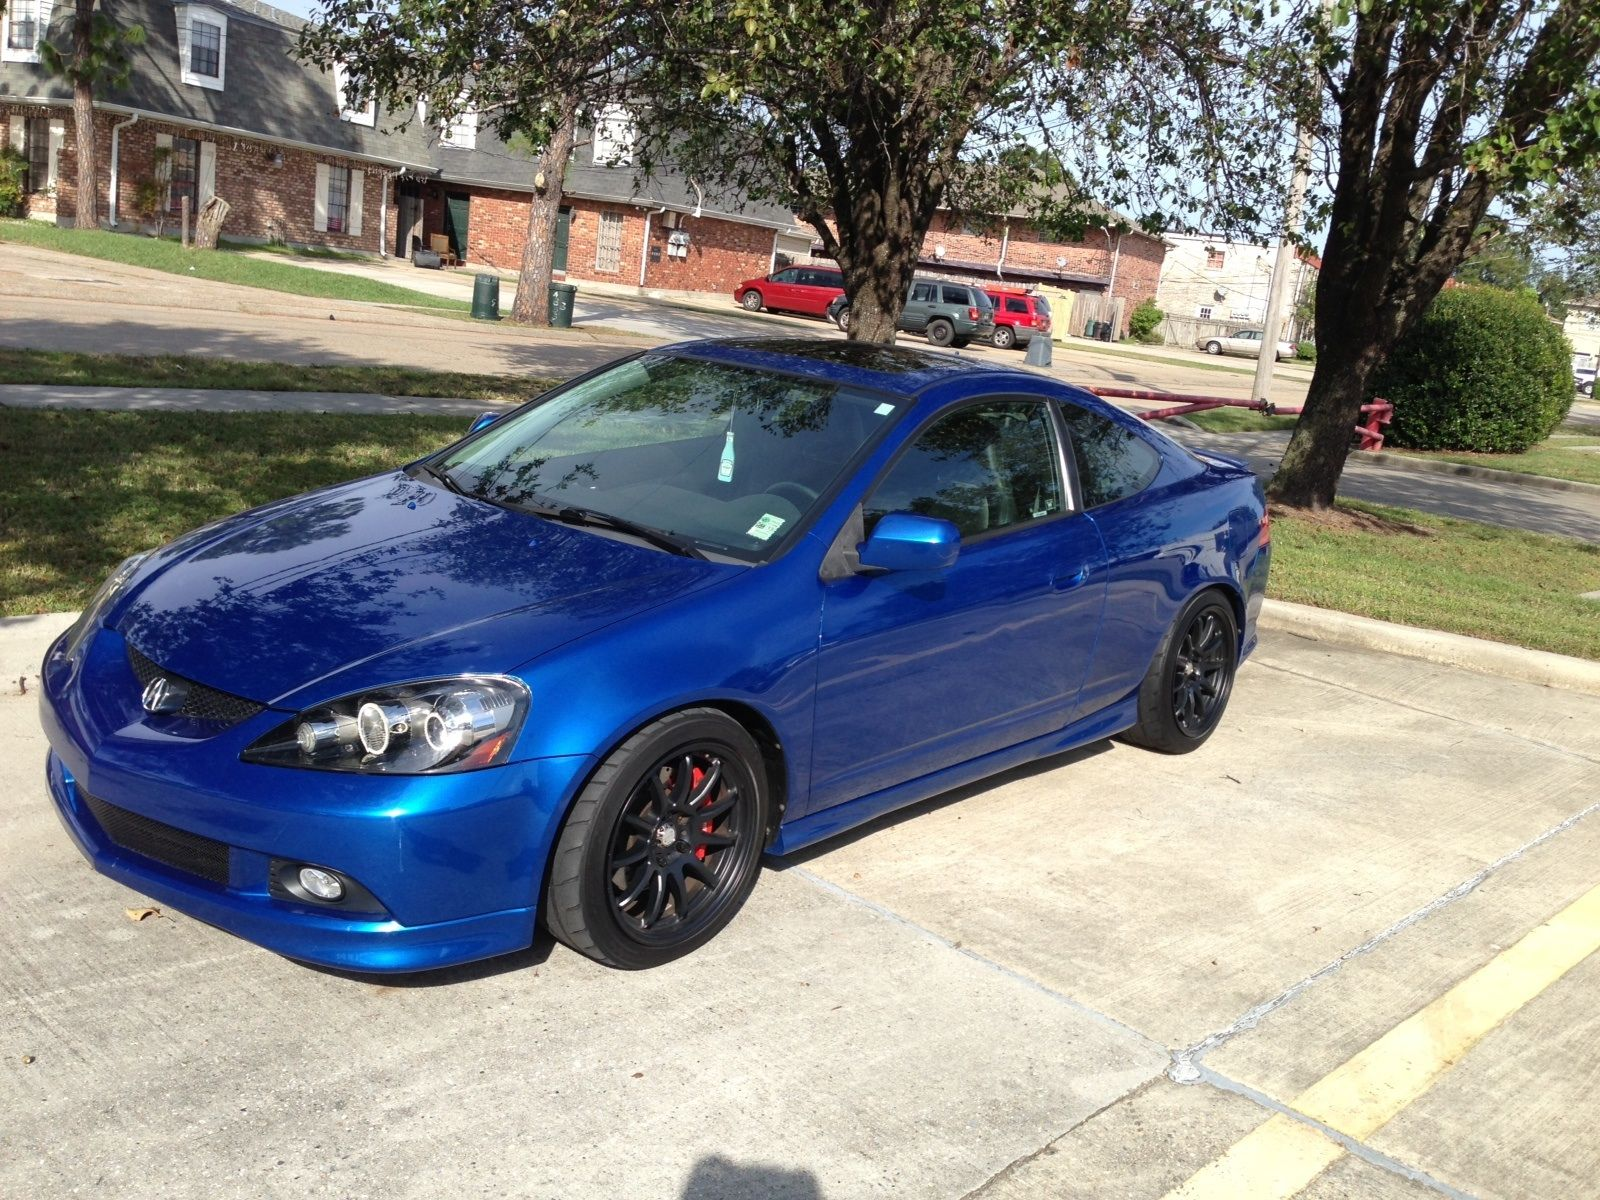 2005 Acura Supercharged rsx type s [RSX] Type s For Sale | Kenner Louisiana